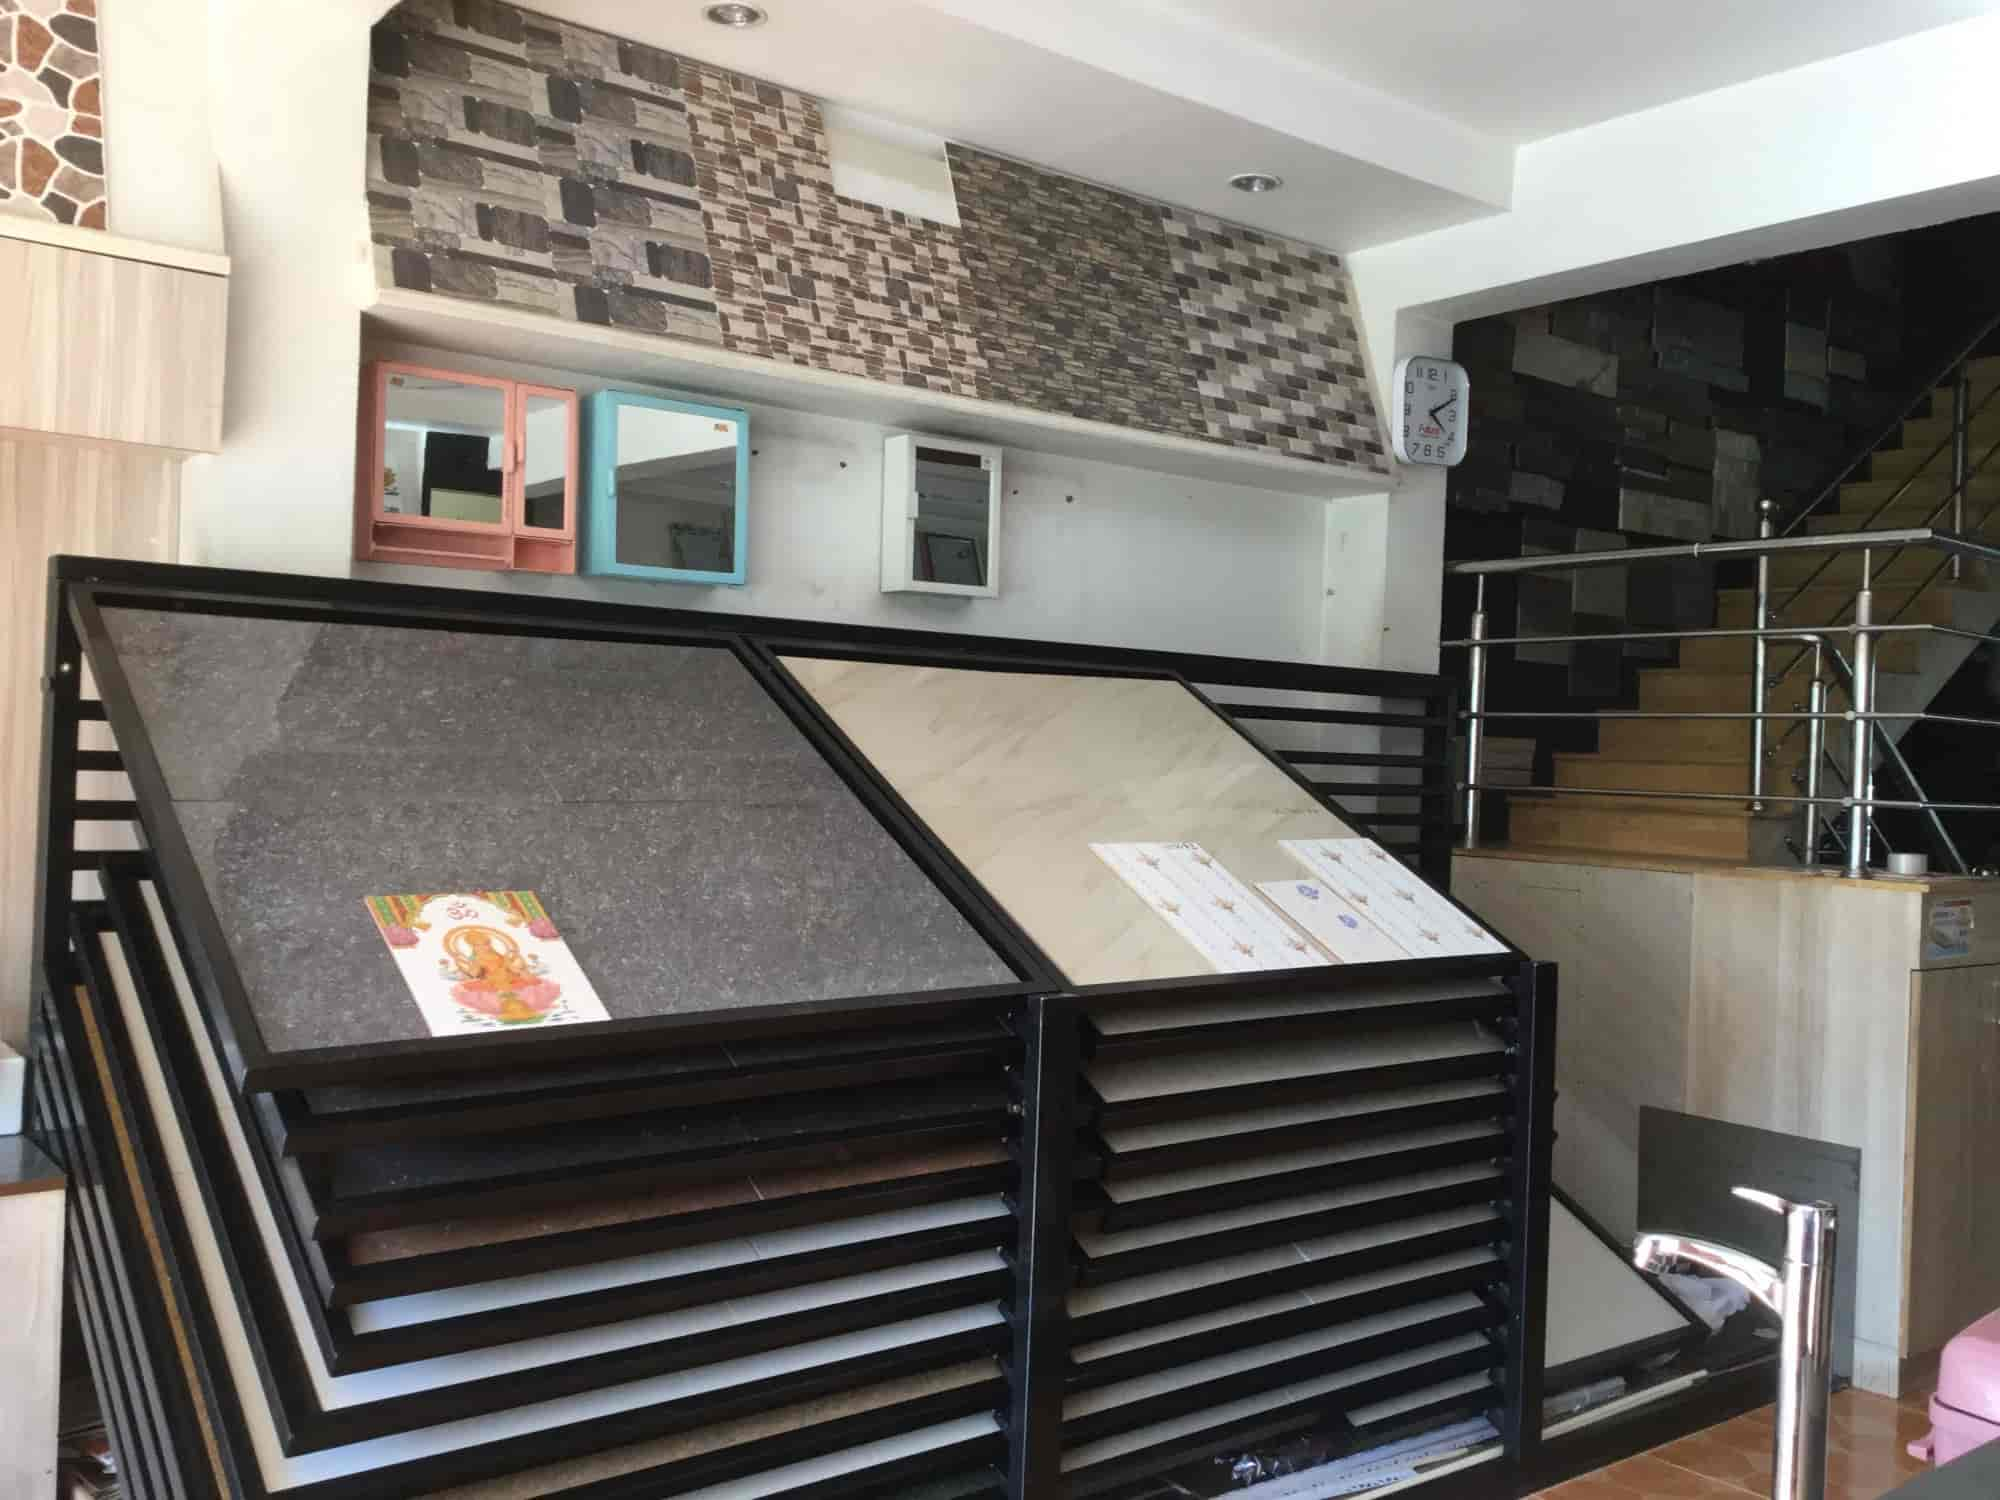 Royal ceramics electronic city ceramic tile dealers in royal ceramics electronic city ceramic tile dealers in bangalore justdial dailygadgetfo Gallery